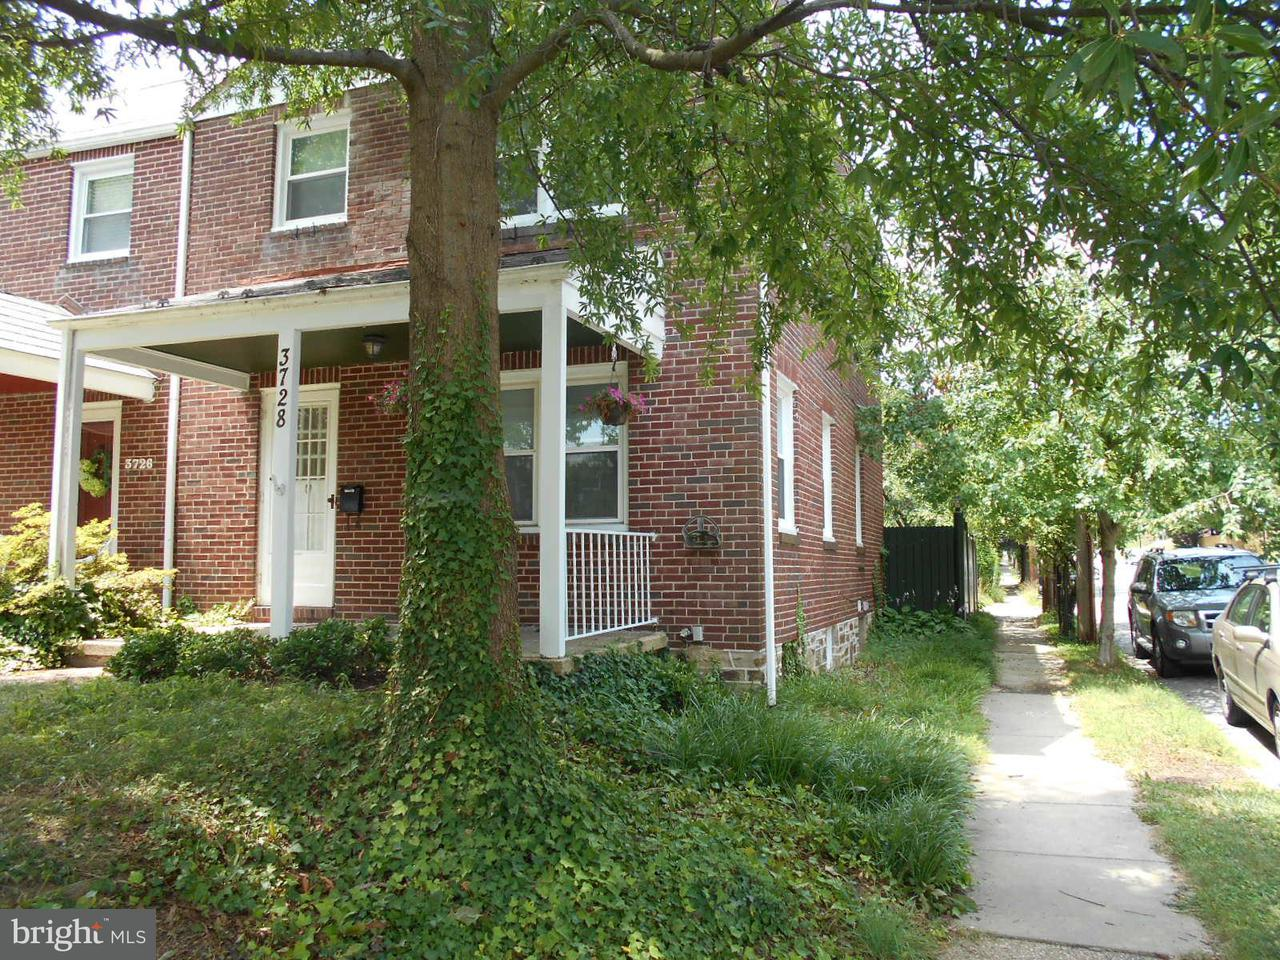 Other Residential for Rent at 3728 Yolando Rd Baltimore, Maryland 21218 United States